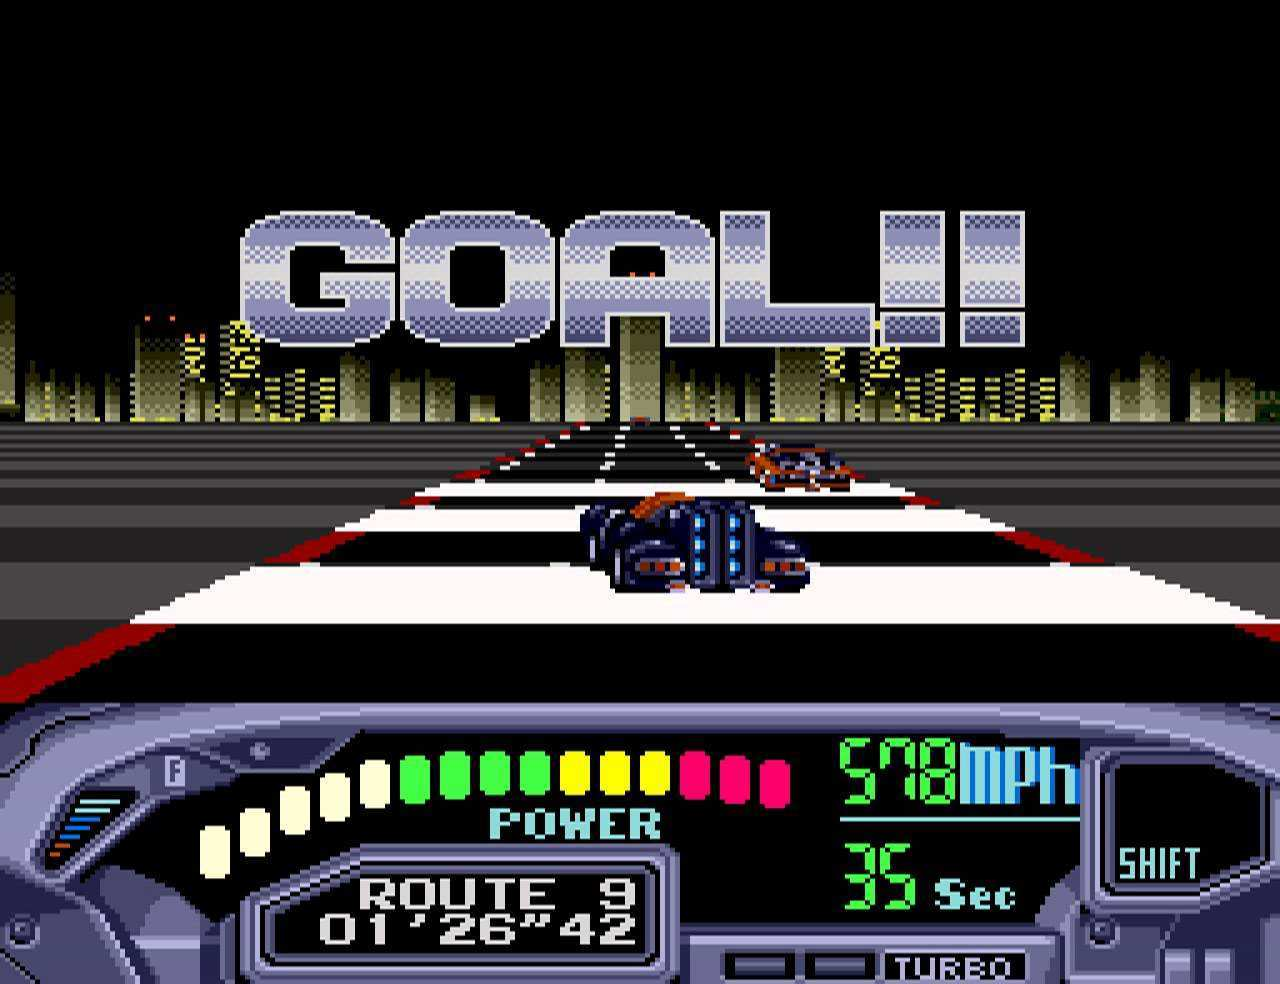 31 Concept of Outrun 2019 Sega Genesis Rom History with Outrun 2019 Sega Genesis Rom